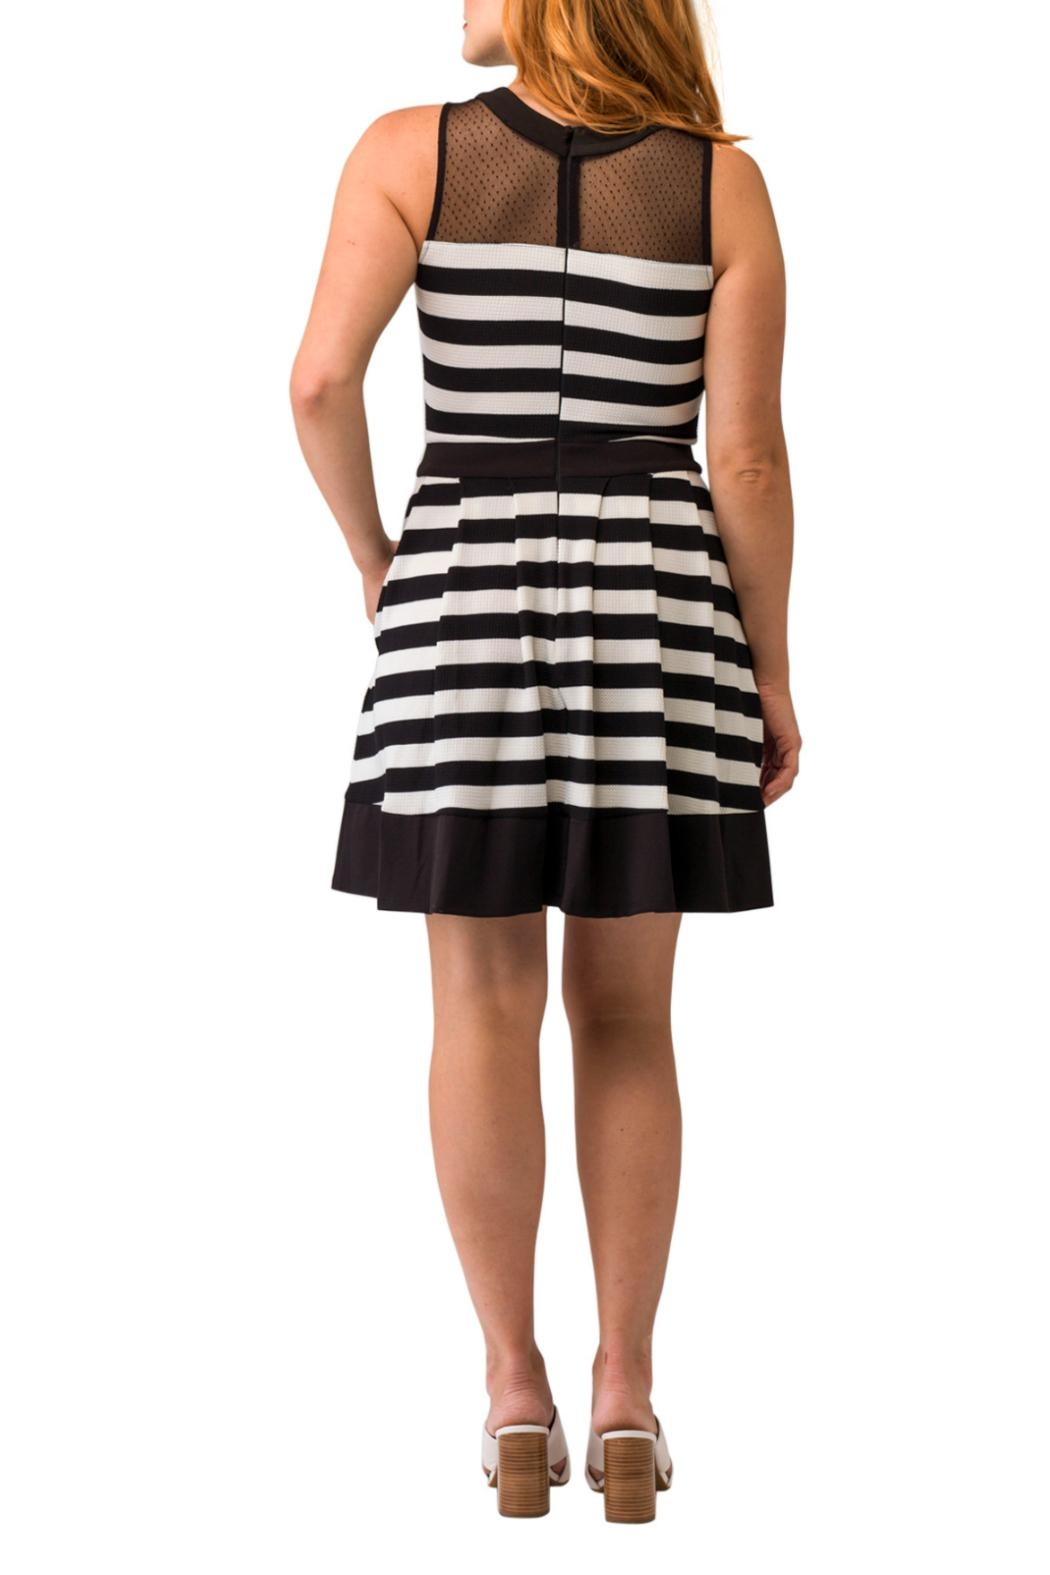 Smak Parlour Sleeveless Striped Dress - Back Cropped Image